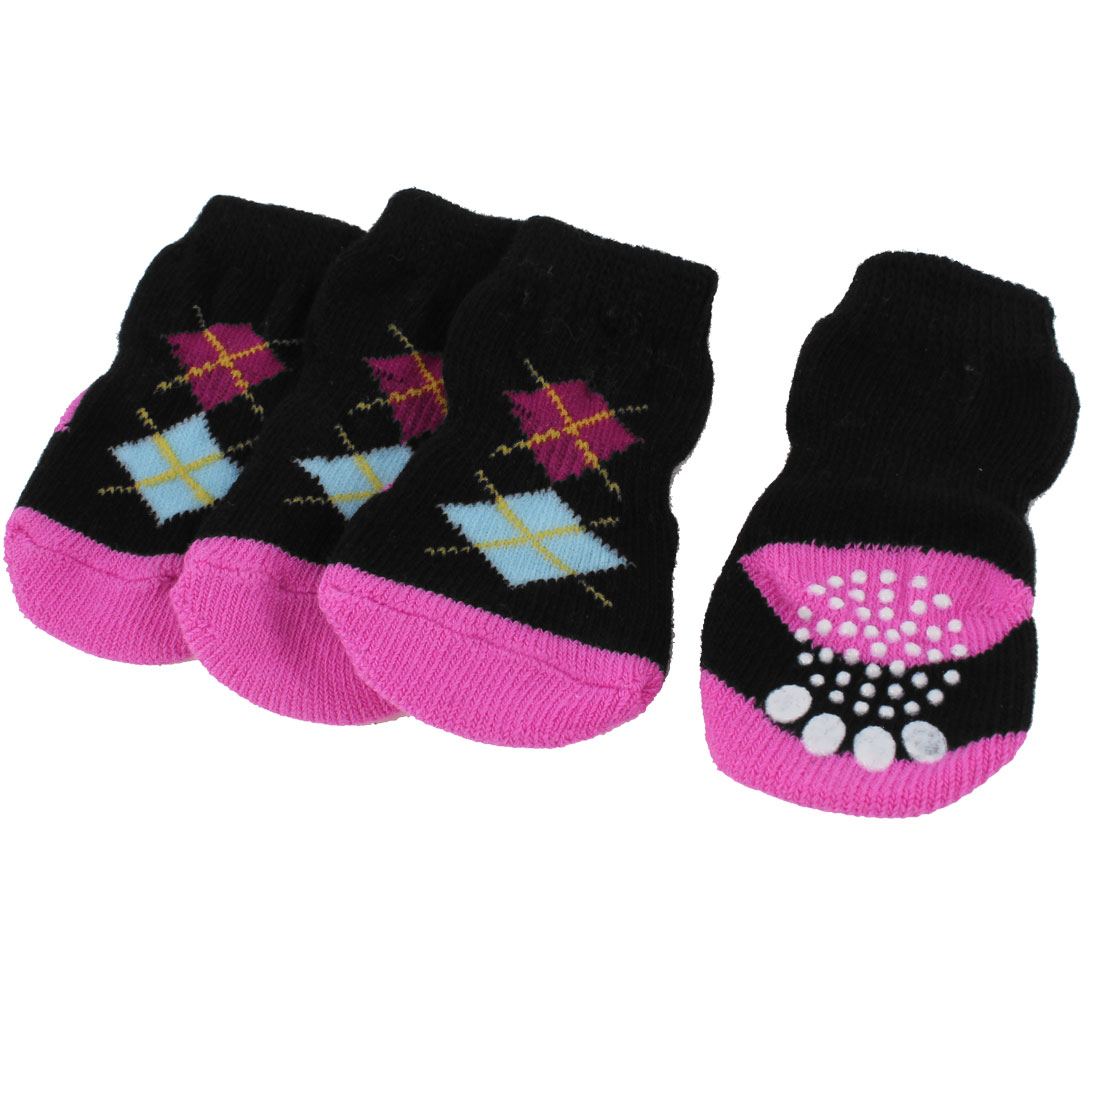 2 Pairs Rhombus Print Ribbed Hem Knitted Winter Socks Black Pink for Doggie